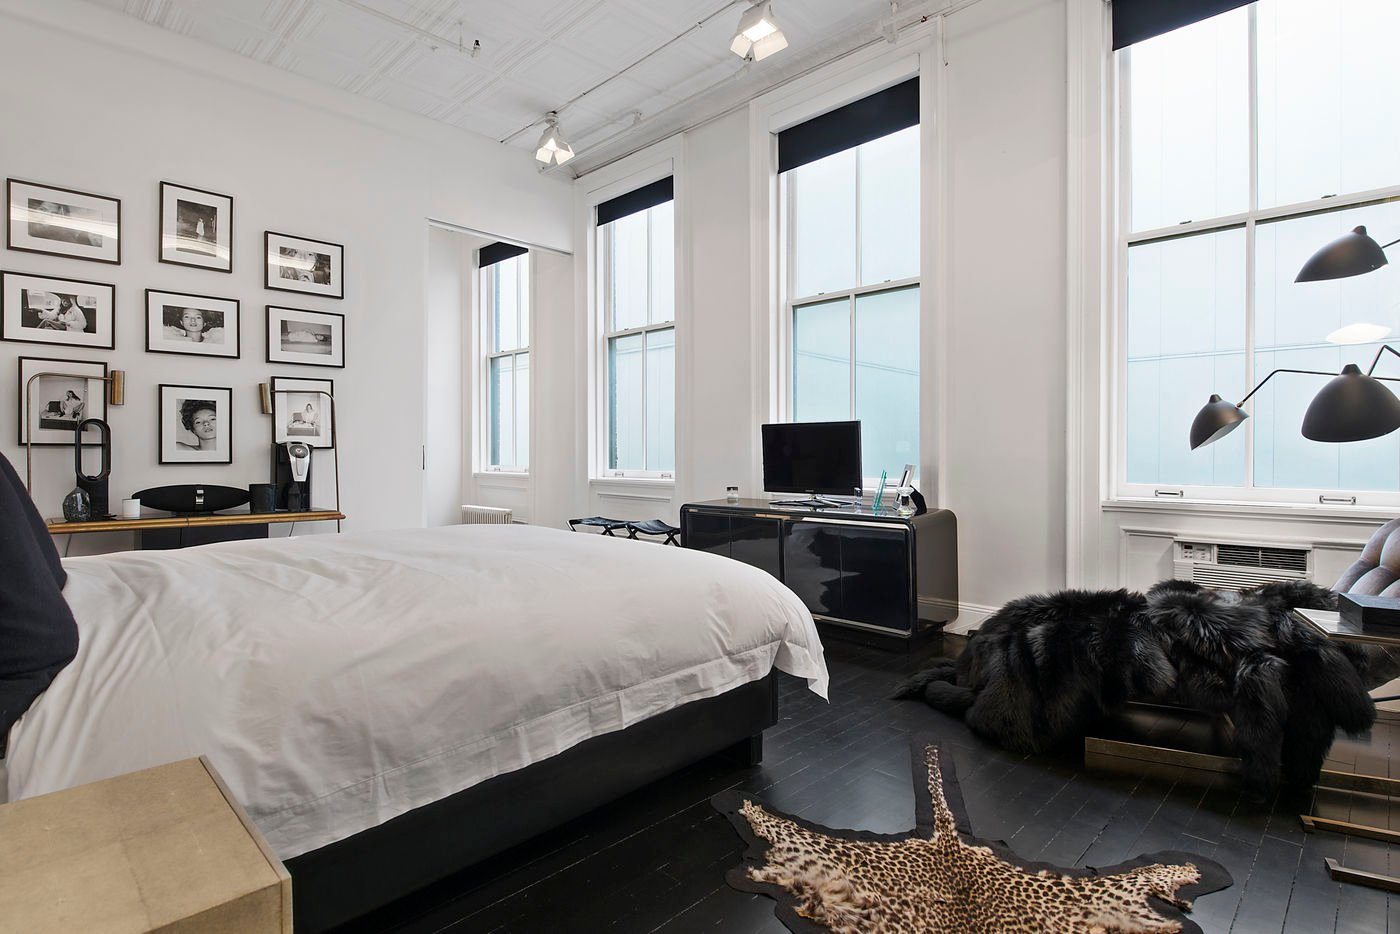 39 Worth Street, Cool Listings, Tribeca, Alexander Wang, Holly Brubach, Lofts, Manhattan Loft for sale